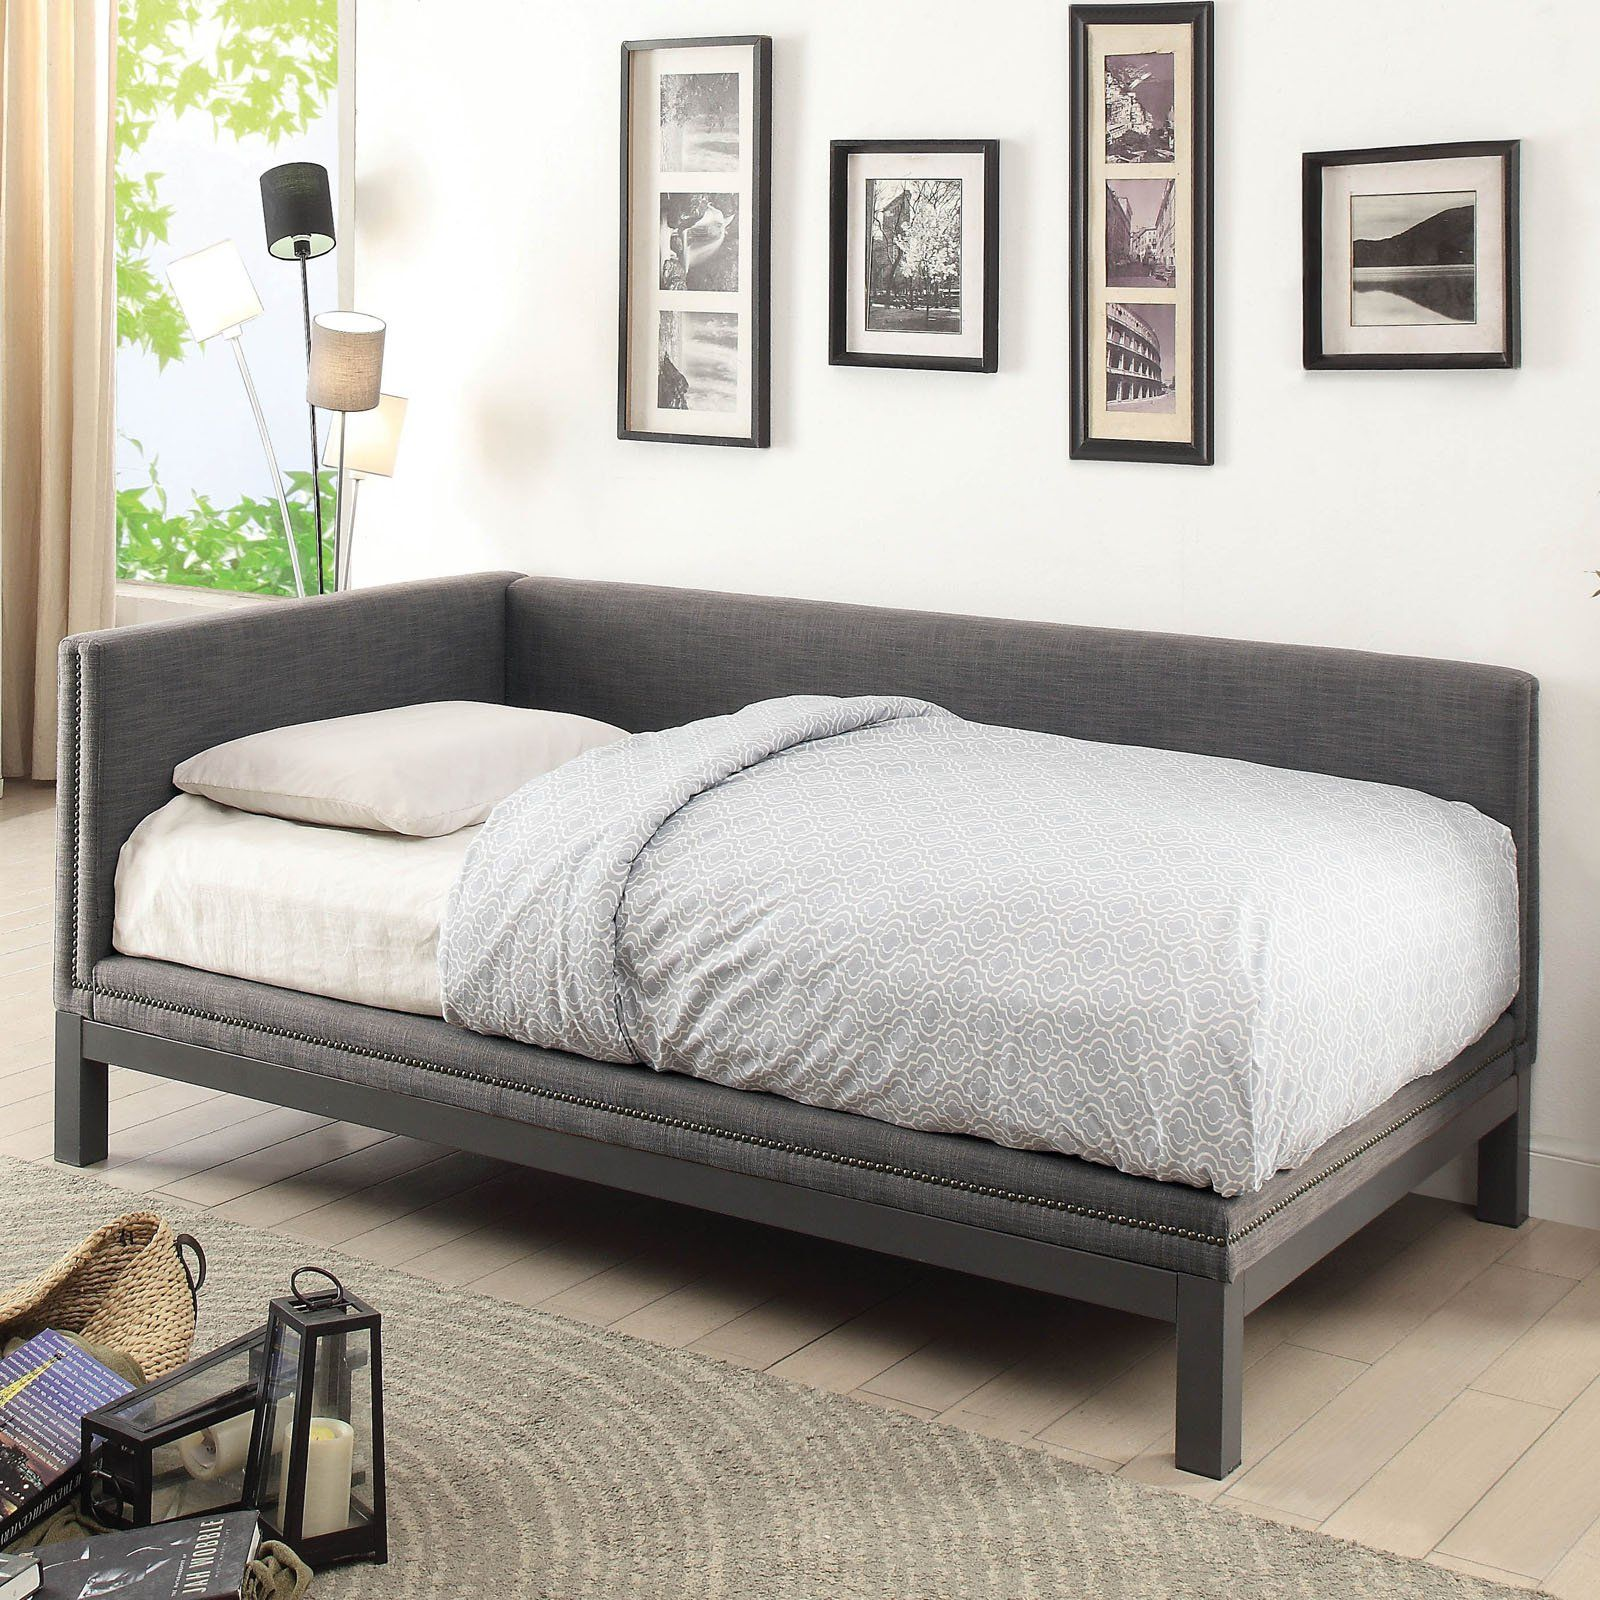 Furniture of America Johana Faux Linen Nailhead Daybed in